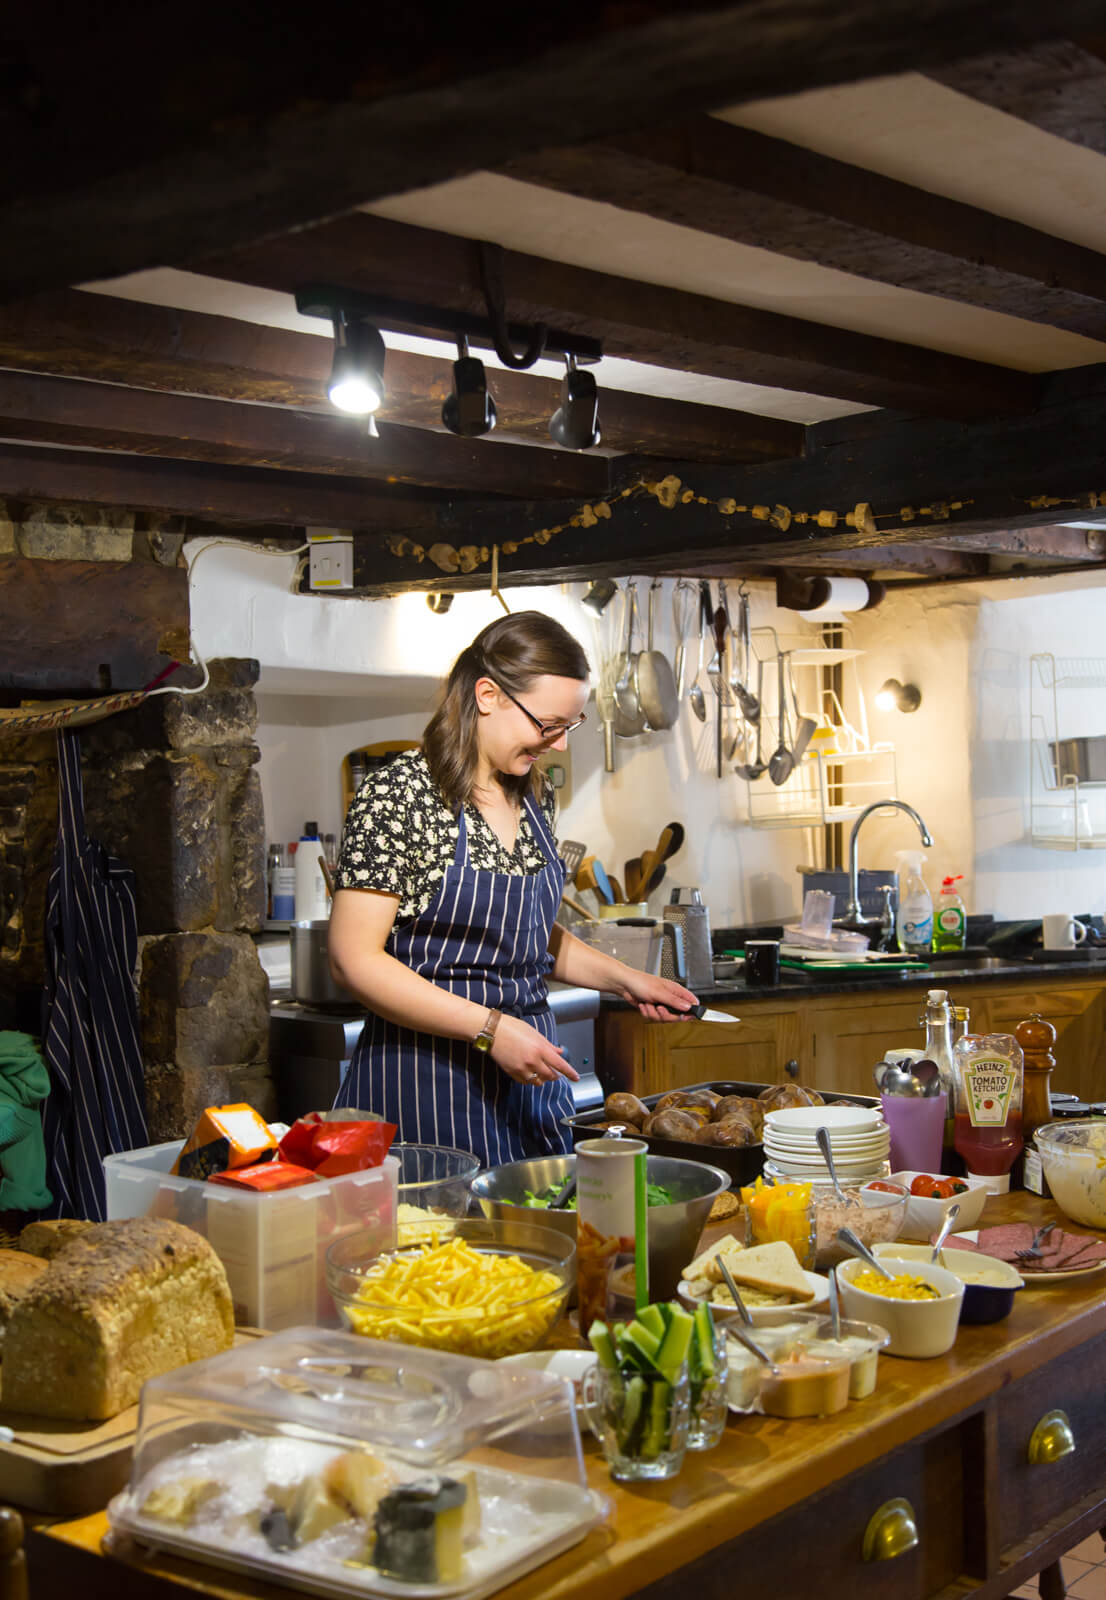 Eliza preparing food for writers at Totleigh Barton